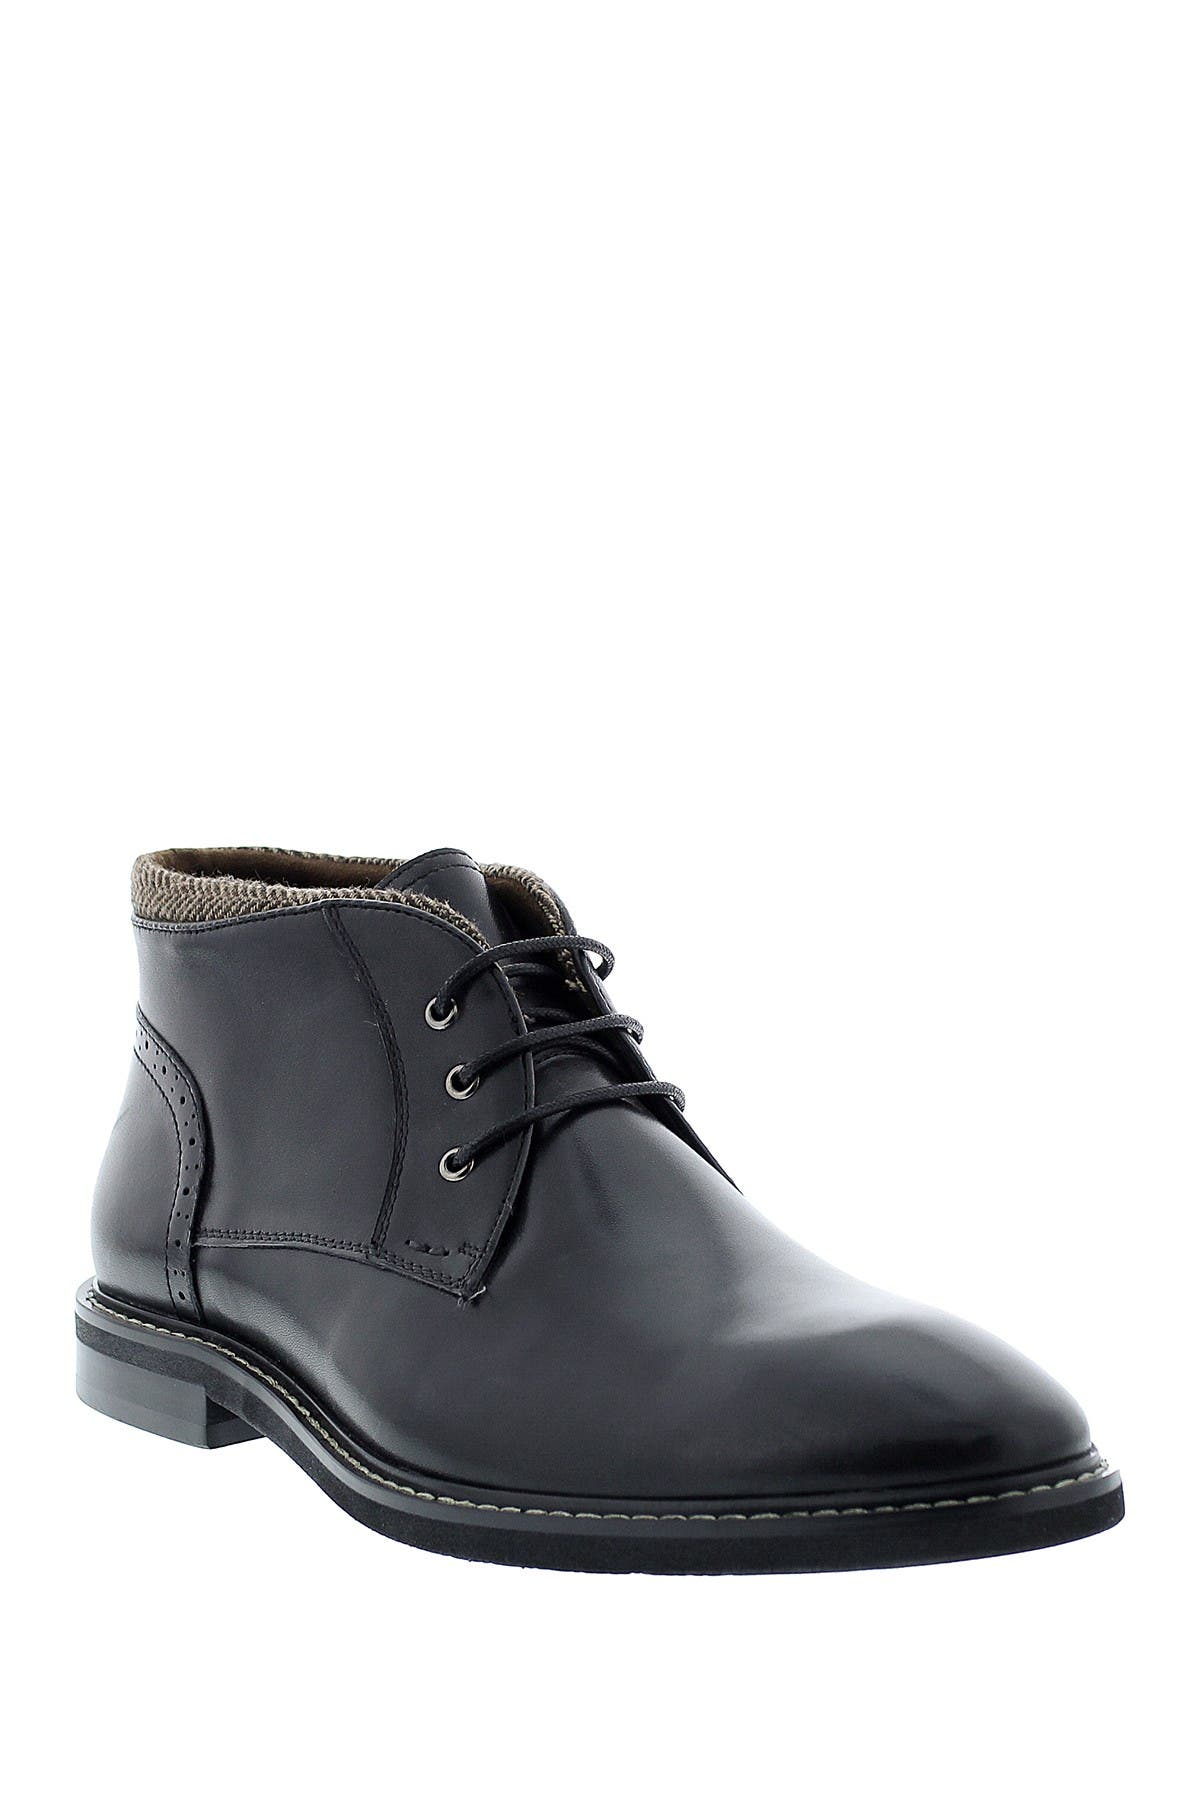 English Laundry Patterson Boot In Black